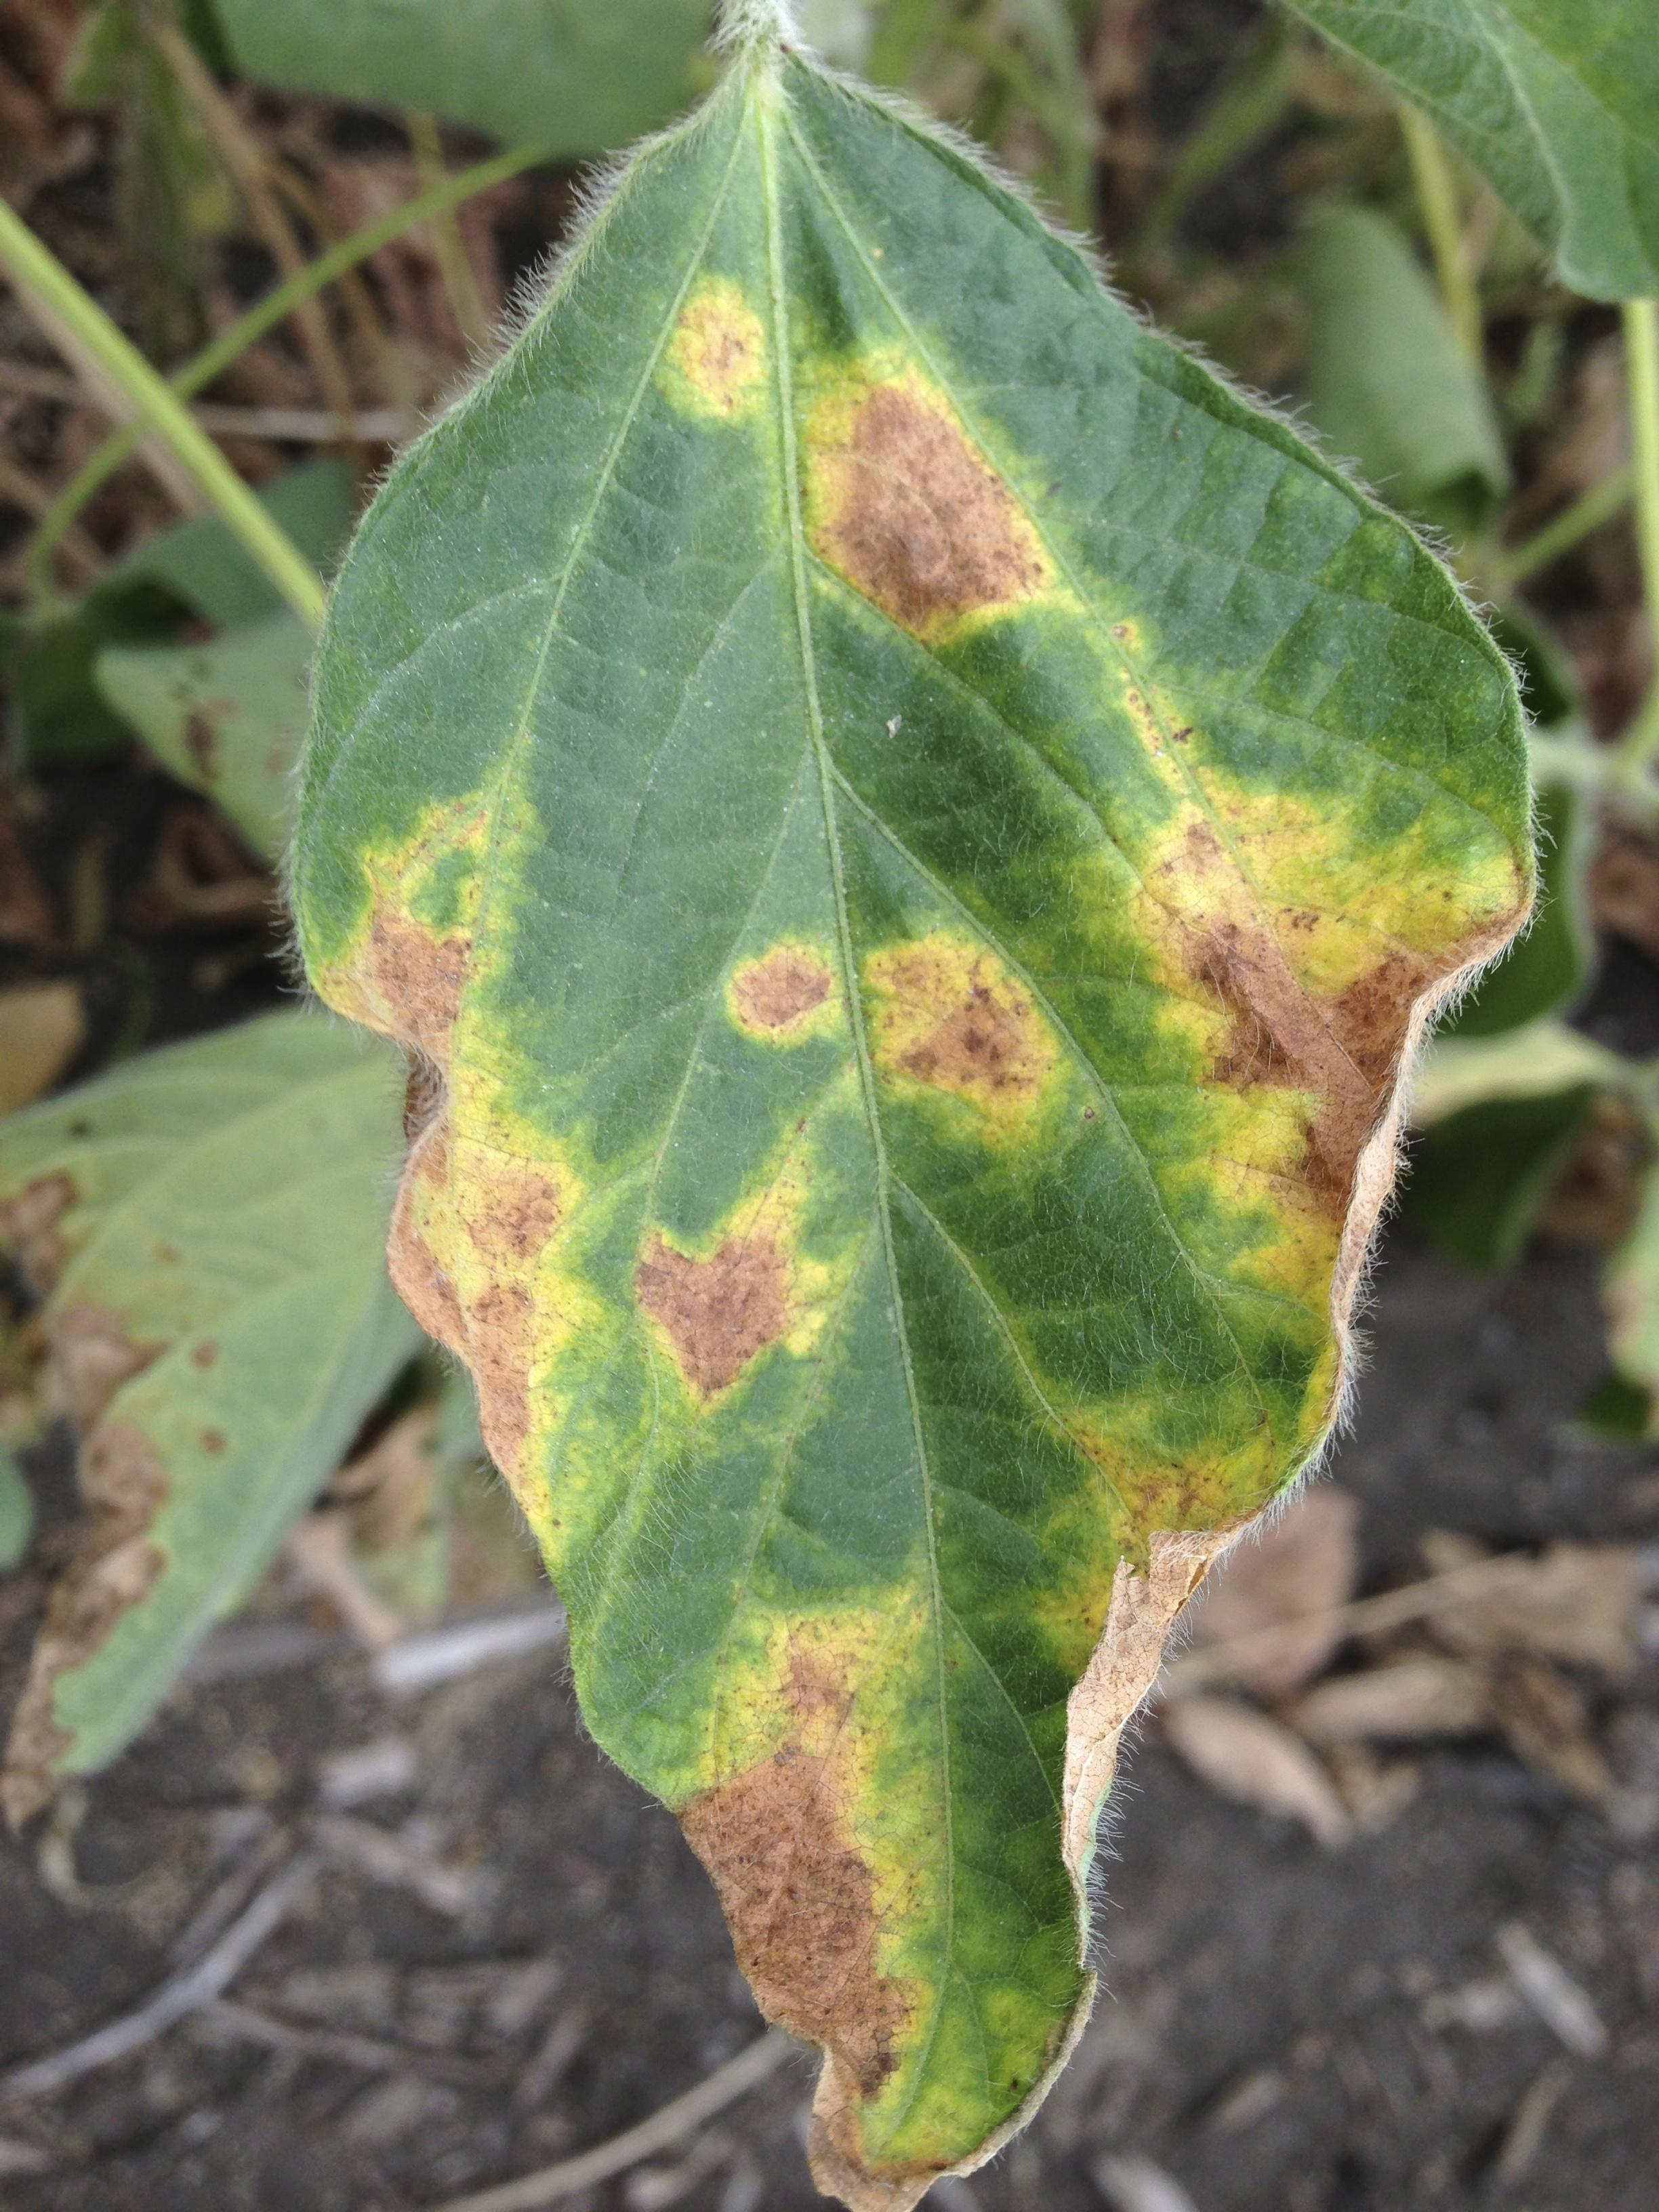 Later soybean vein necrosis lesions.